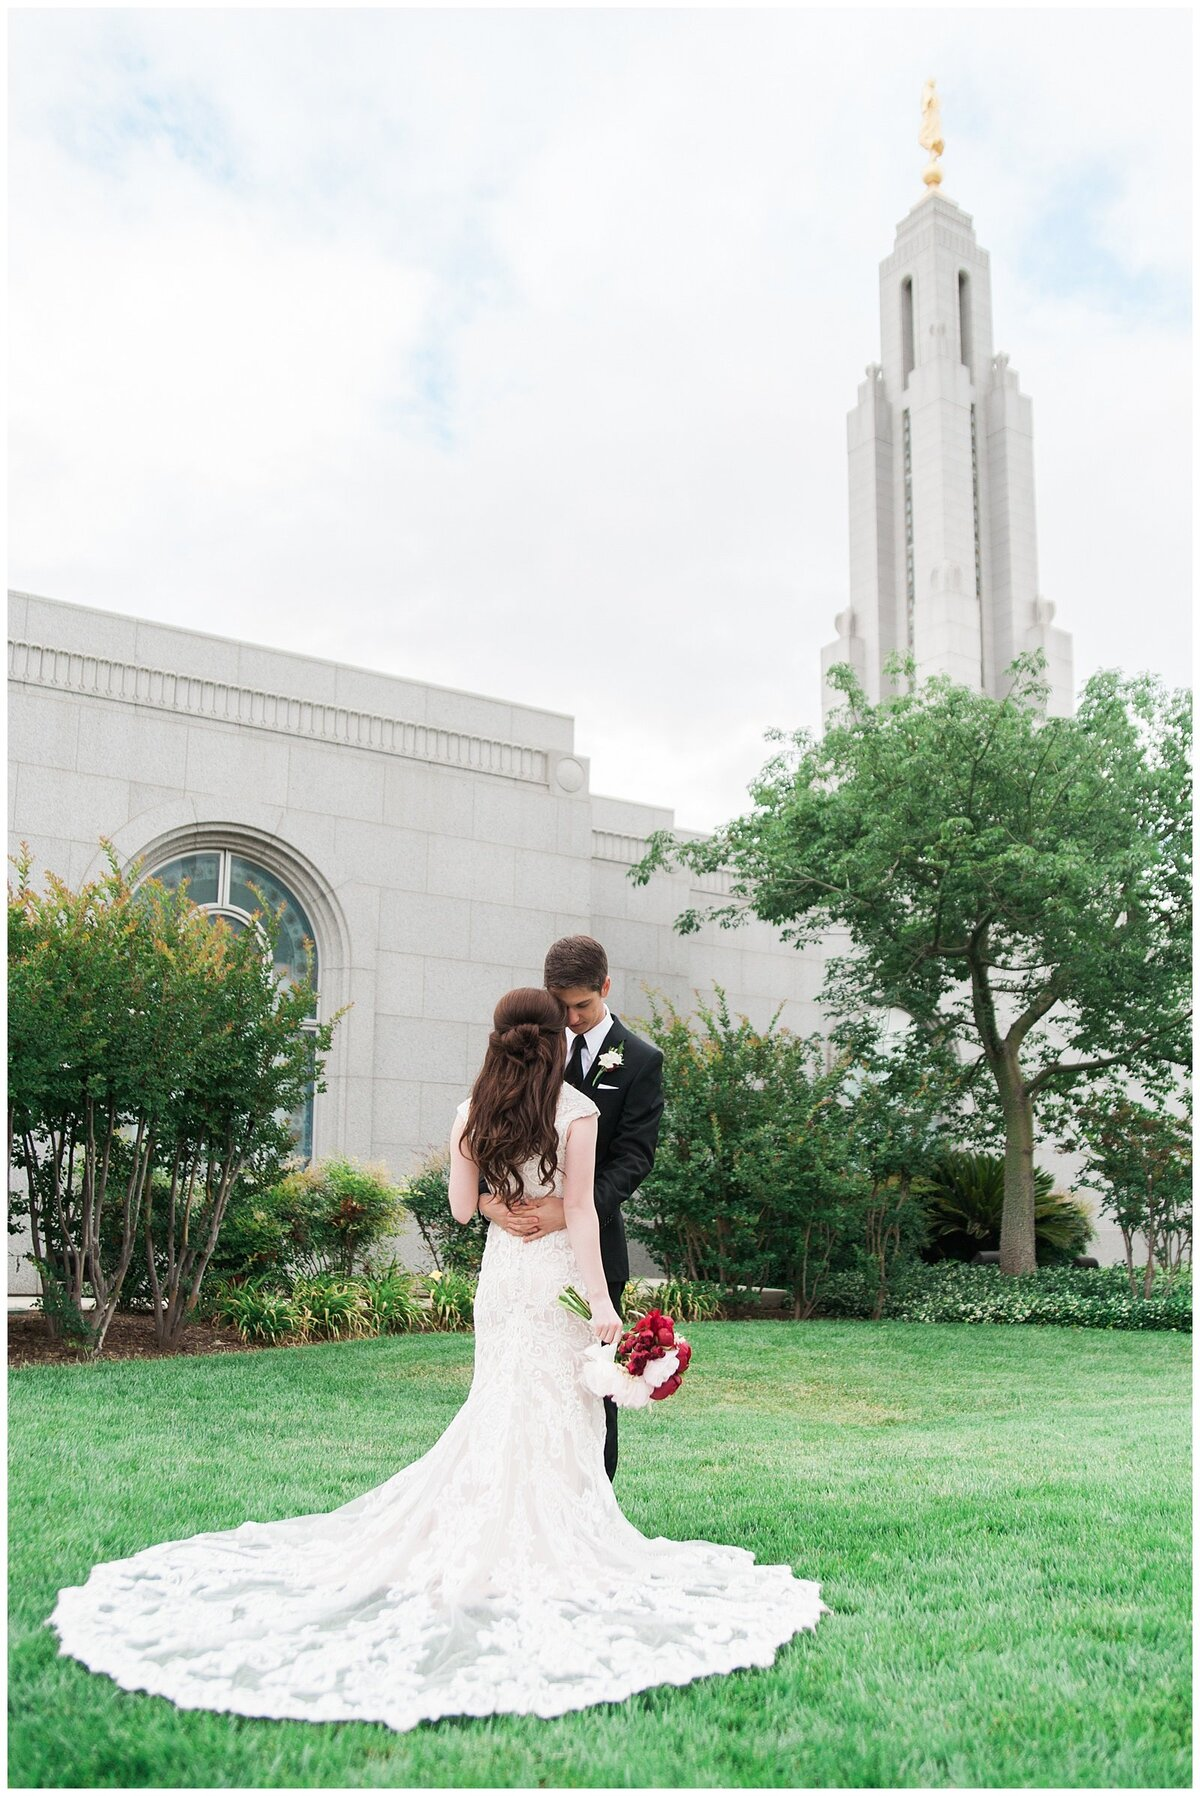 Redlands Temple wedding rancho cucamonga socal photographer photo010